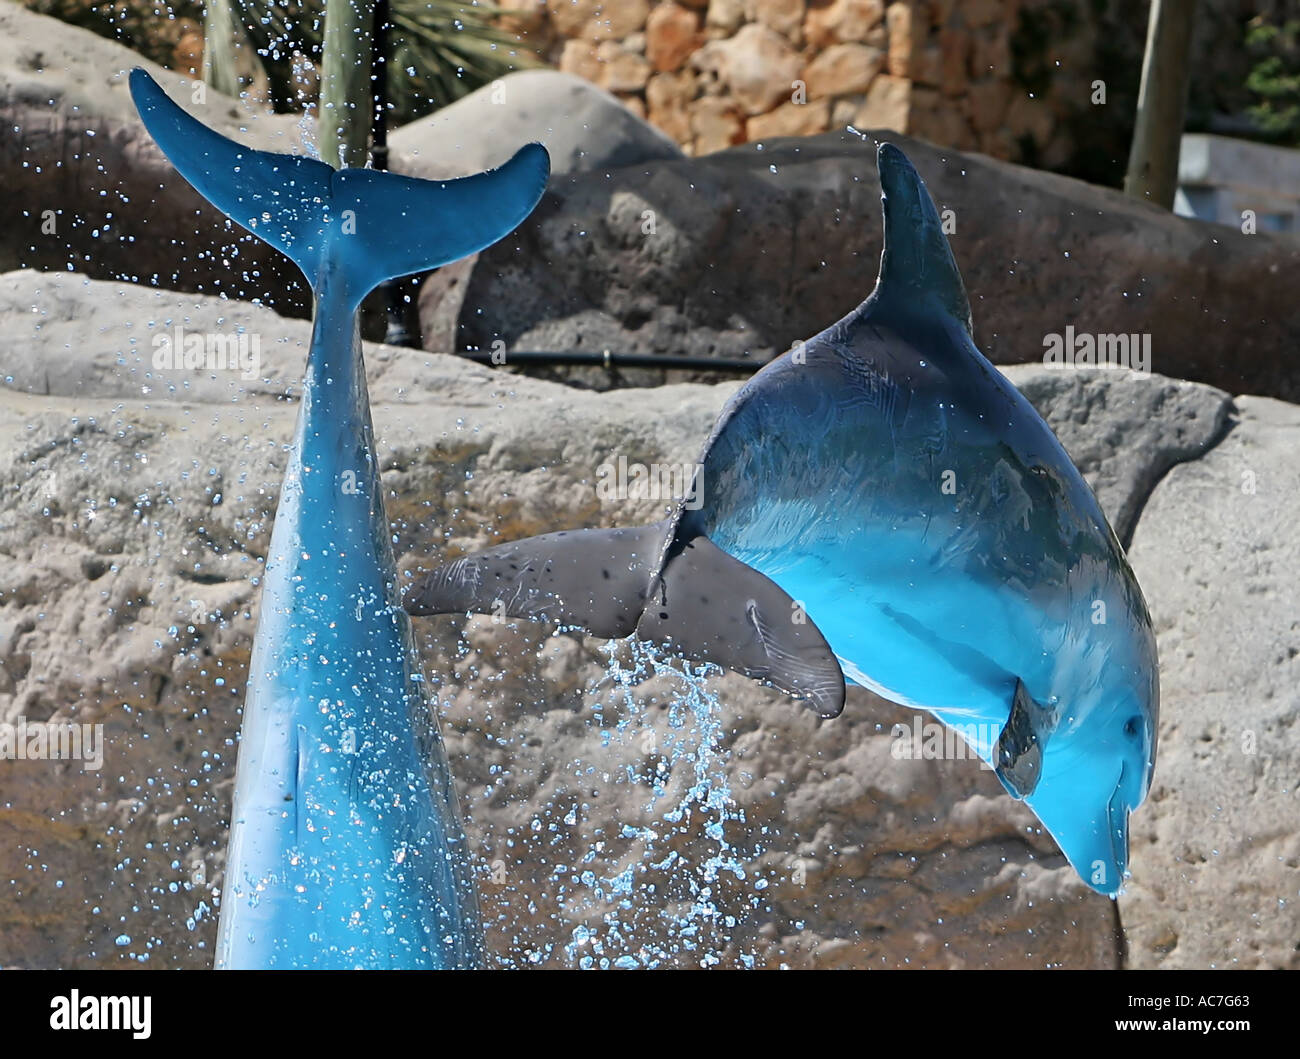 2 Dolphins leaping out of water